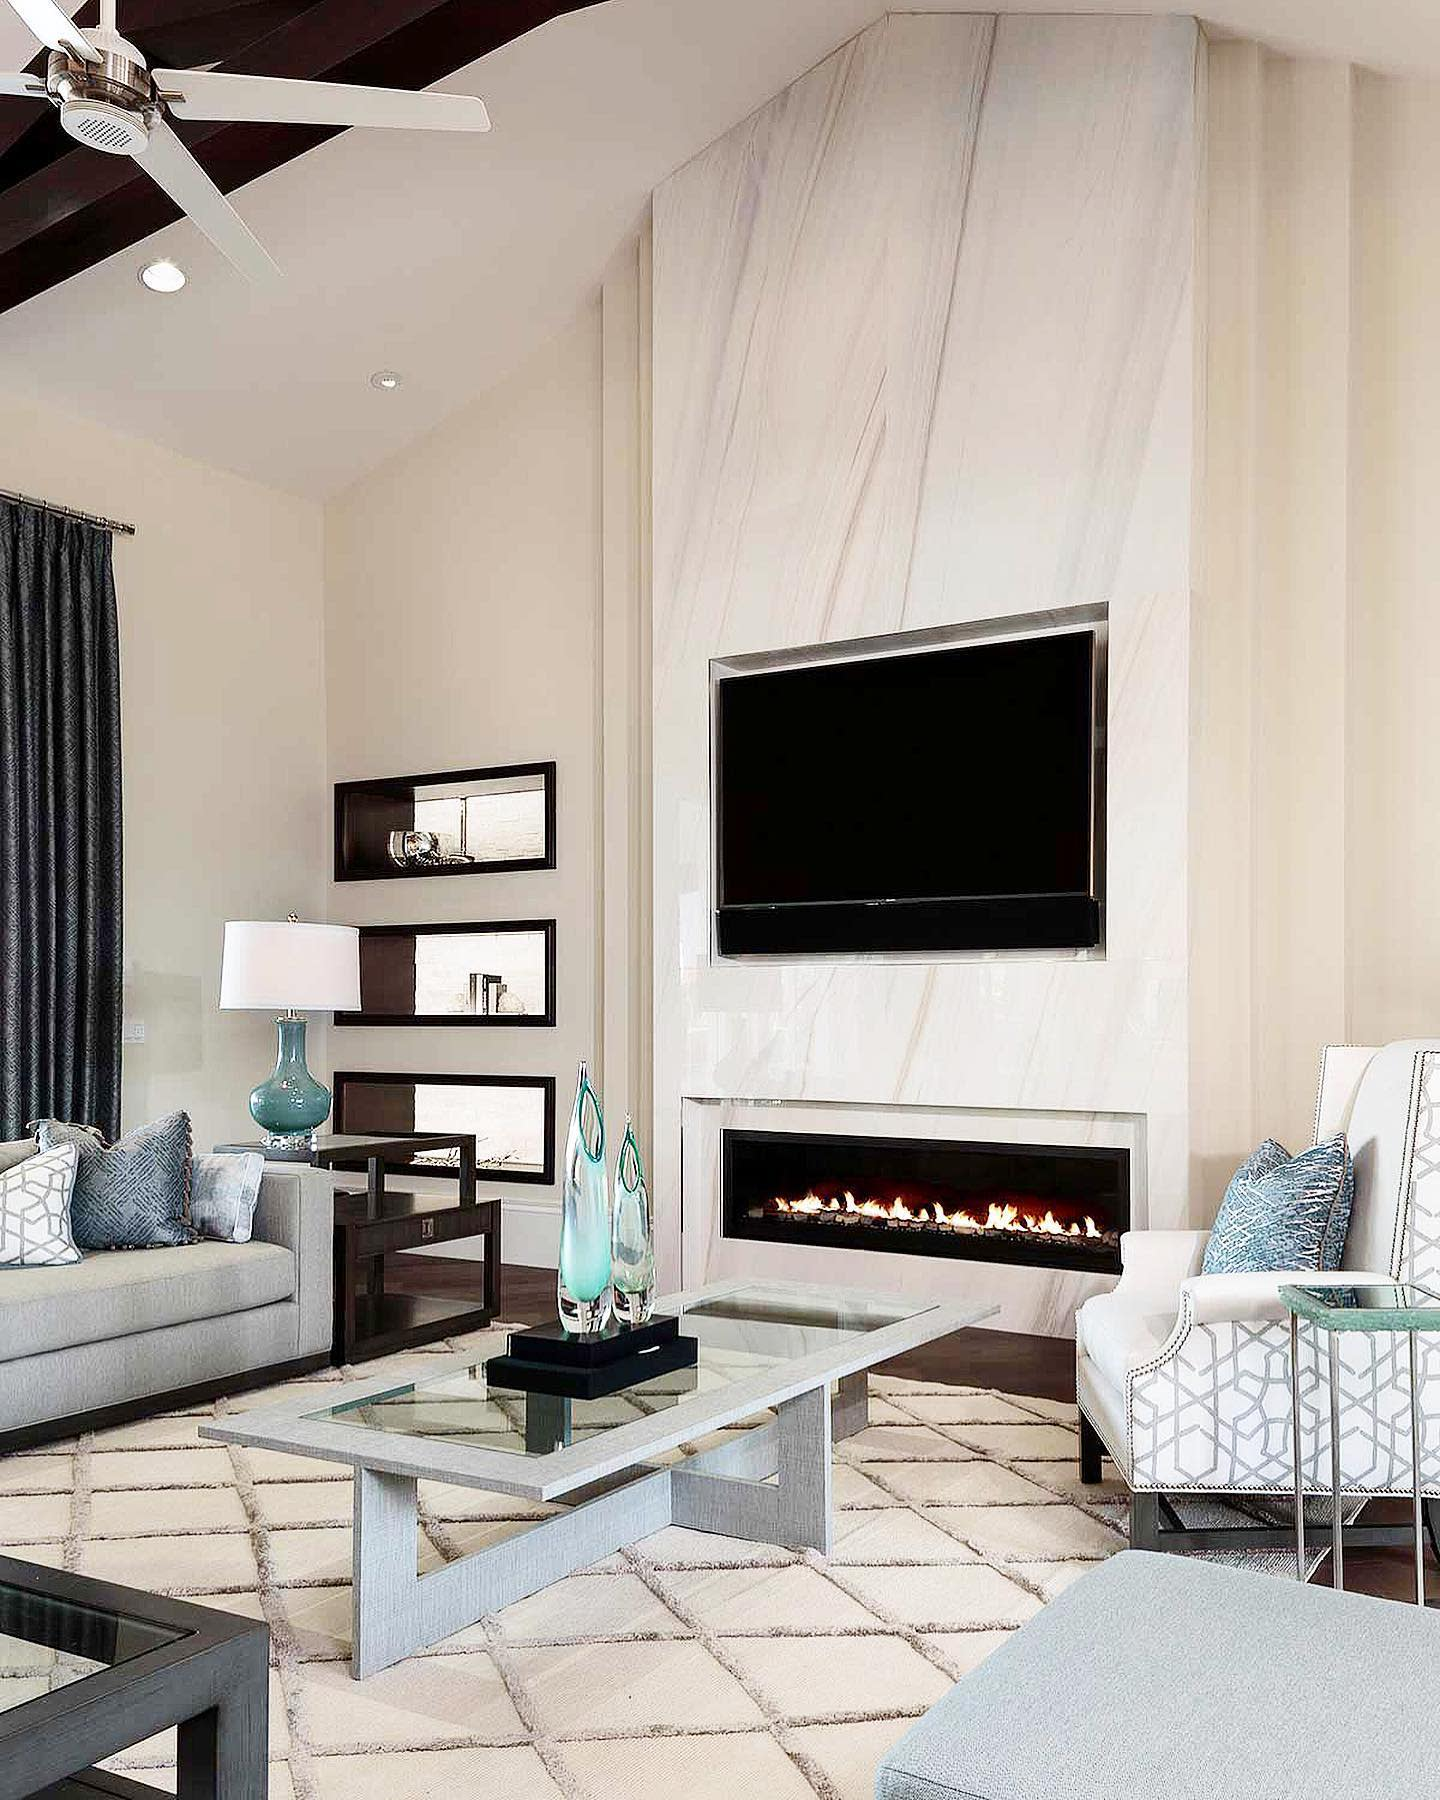 Fireplace Feature Wall Accent Wall Ideas for Living Room -allisonkeevandesign